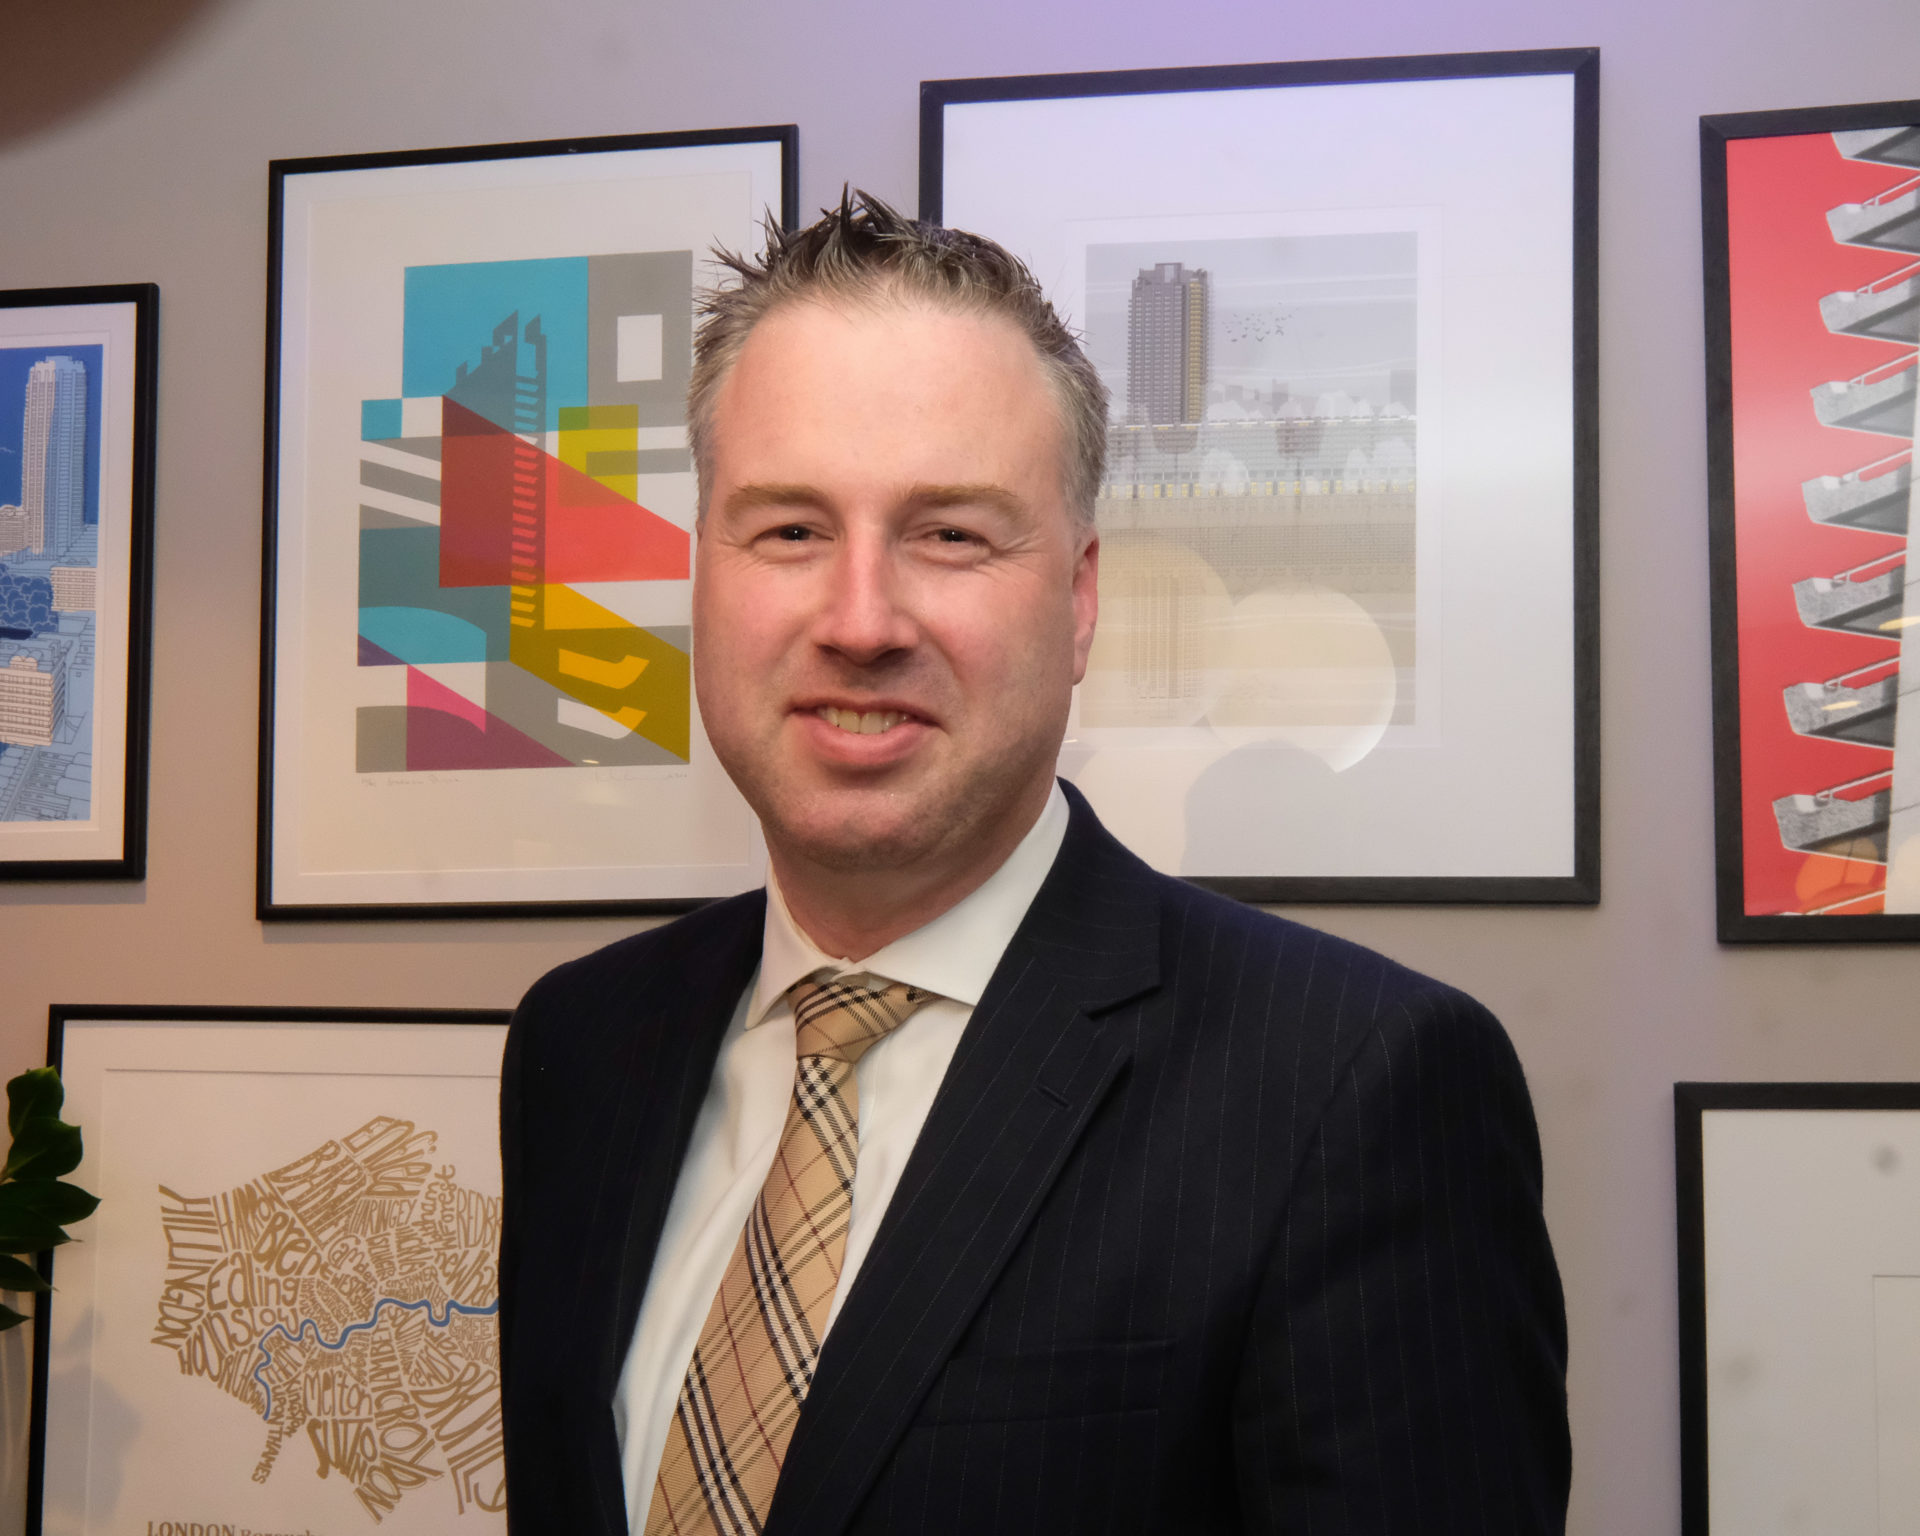 Mark Hardy, General Manager at The Cavendish London